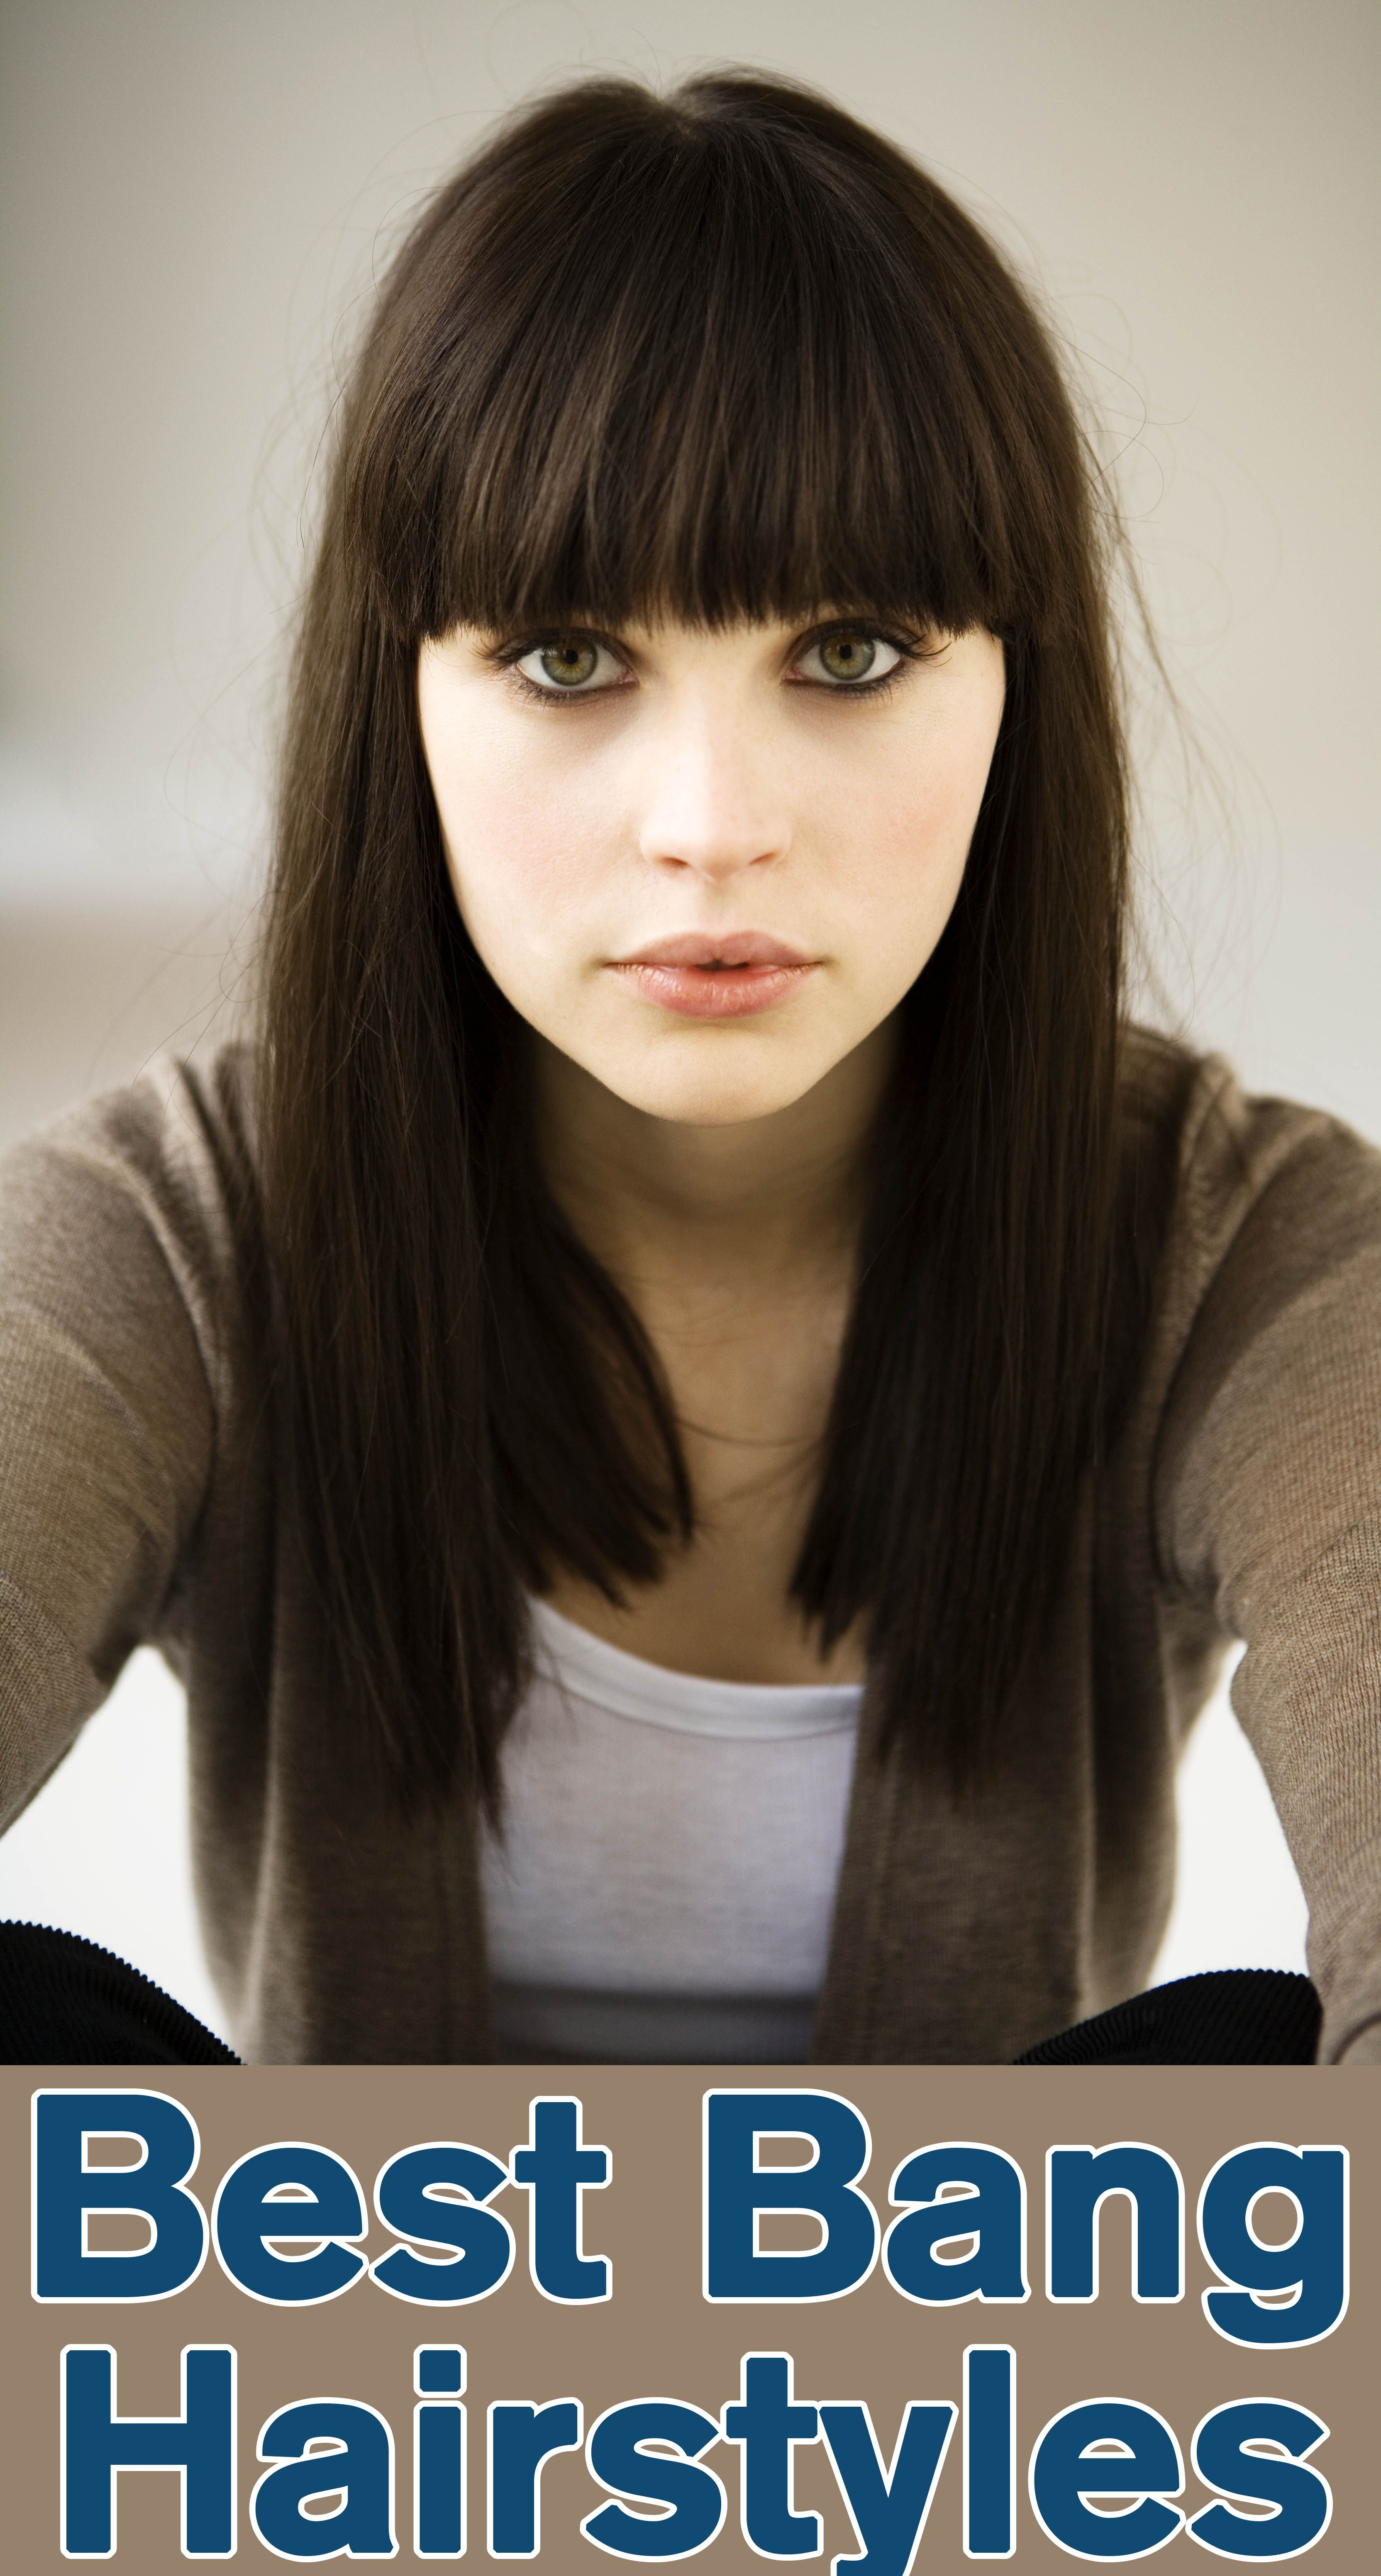 20 Incredible Short Hairstyles With Bangs 20 Incredible Short Hairstyles With Bangs new picture